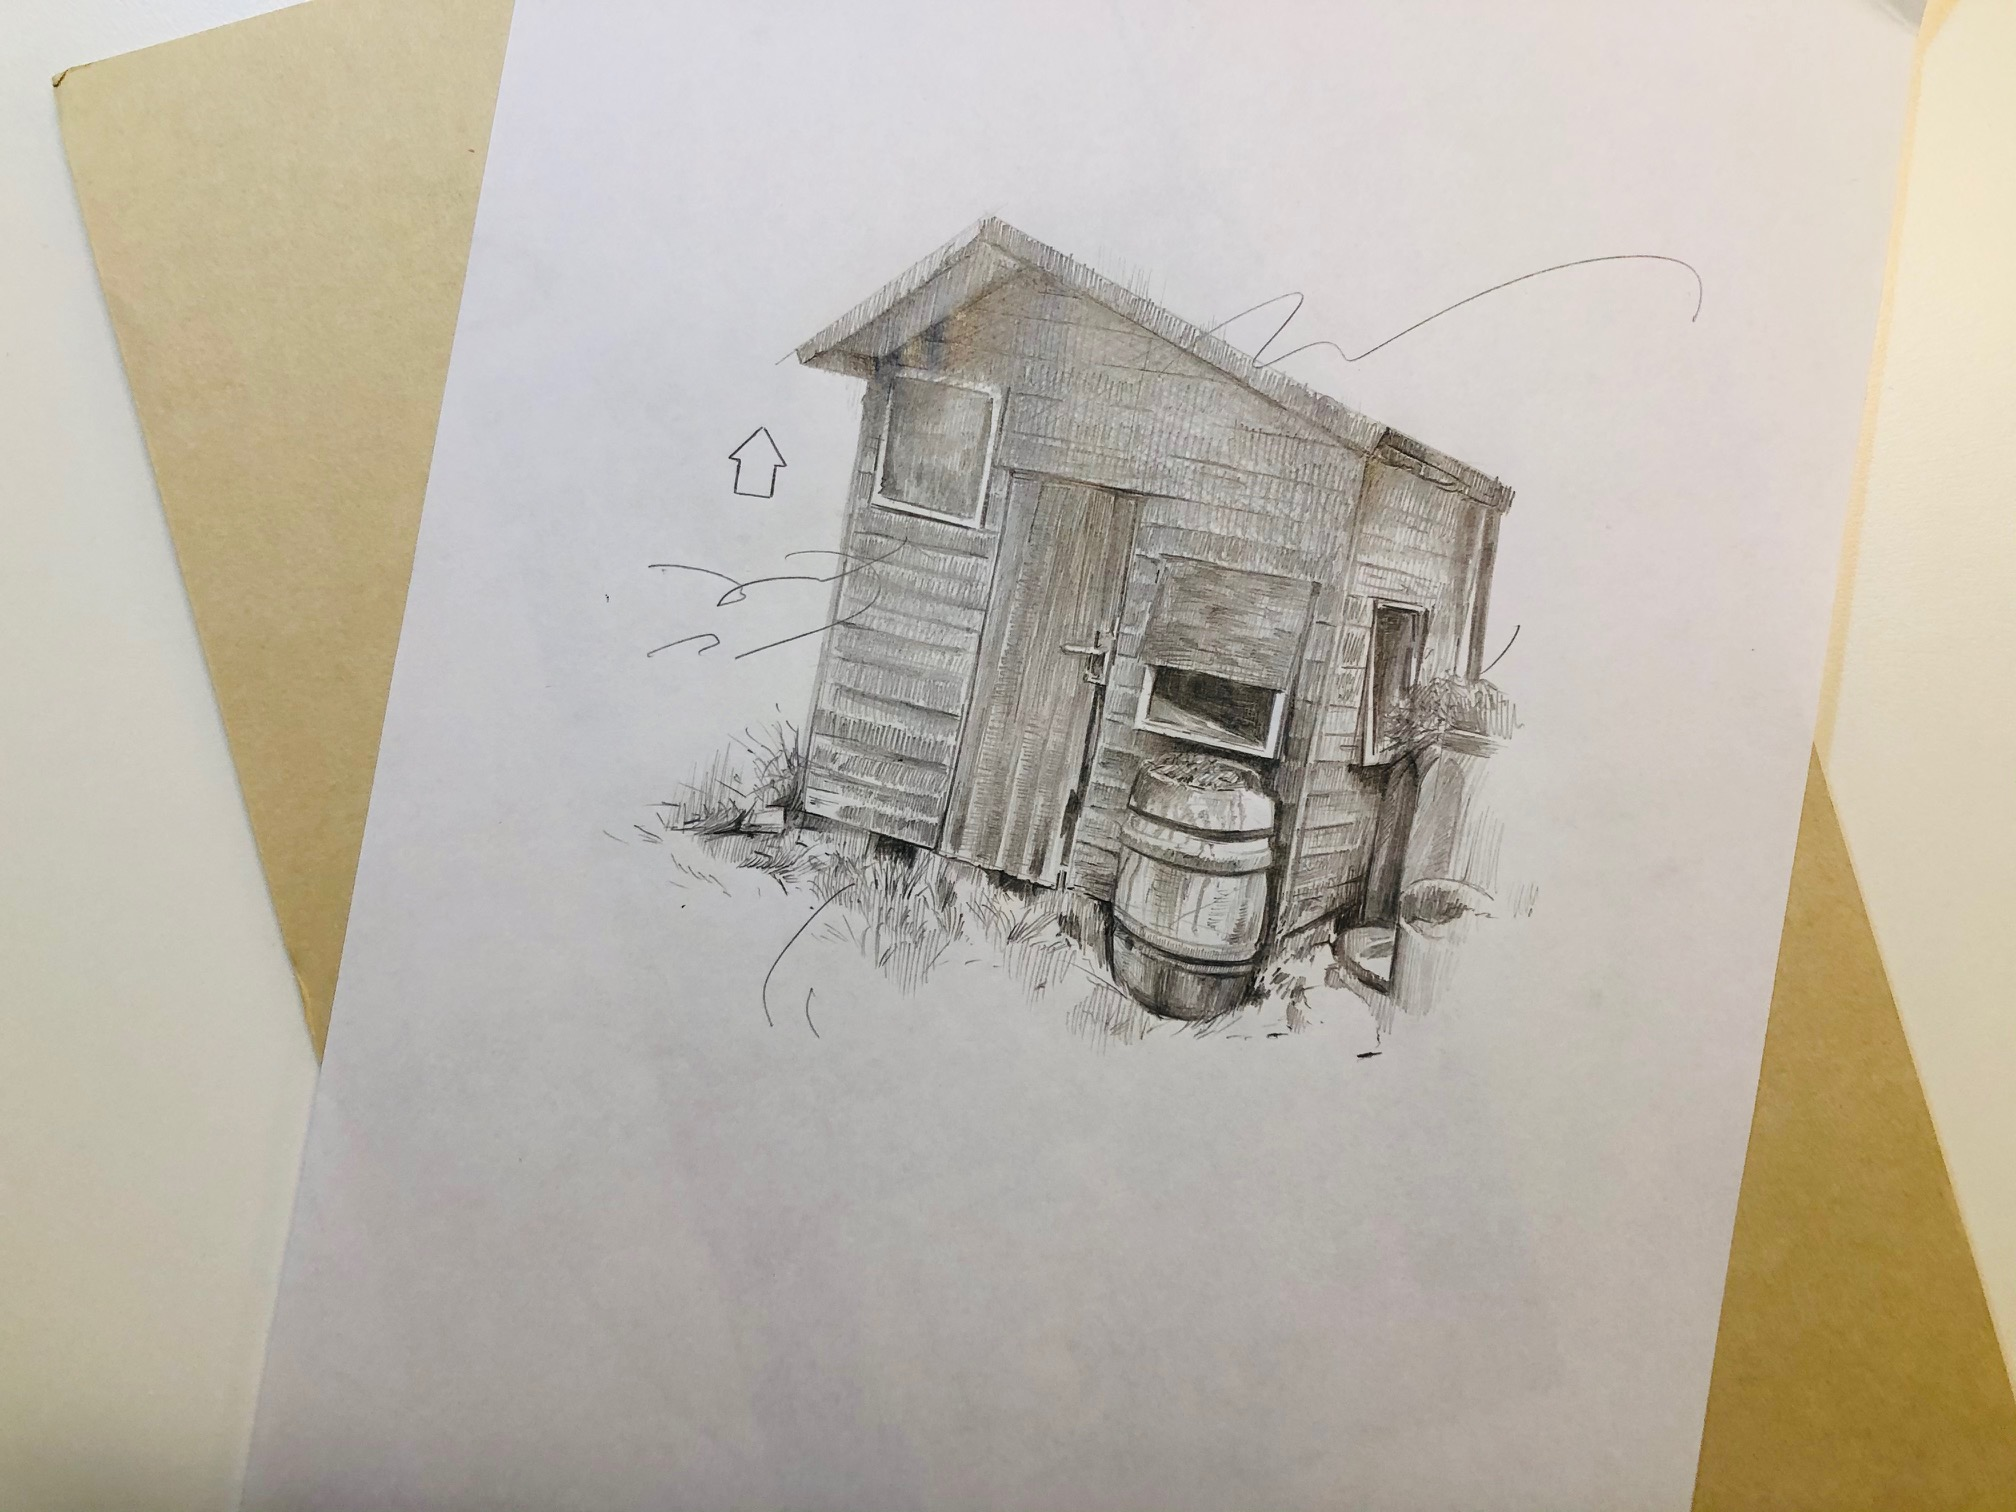 'Shed' drawing by Jade Anthony